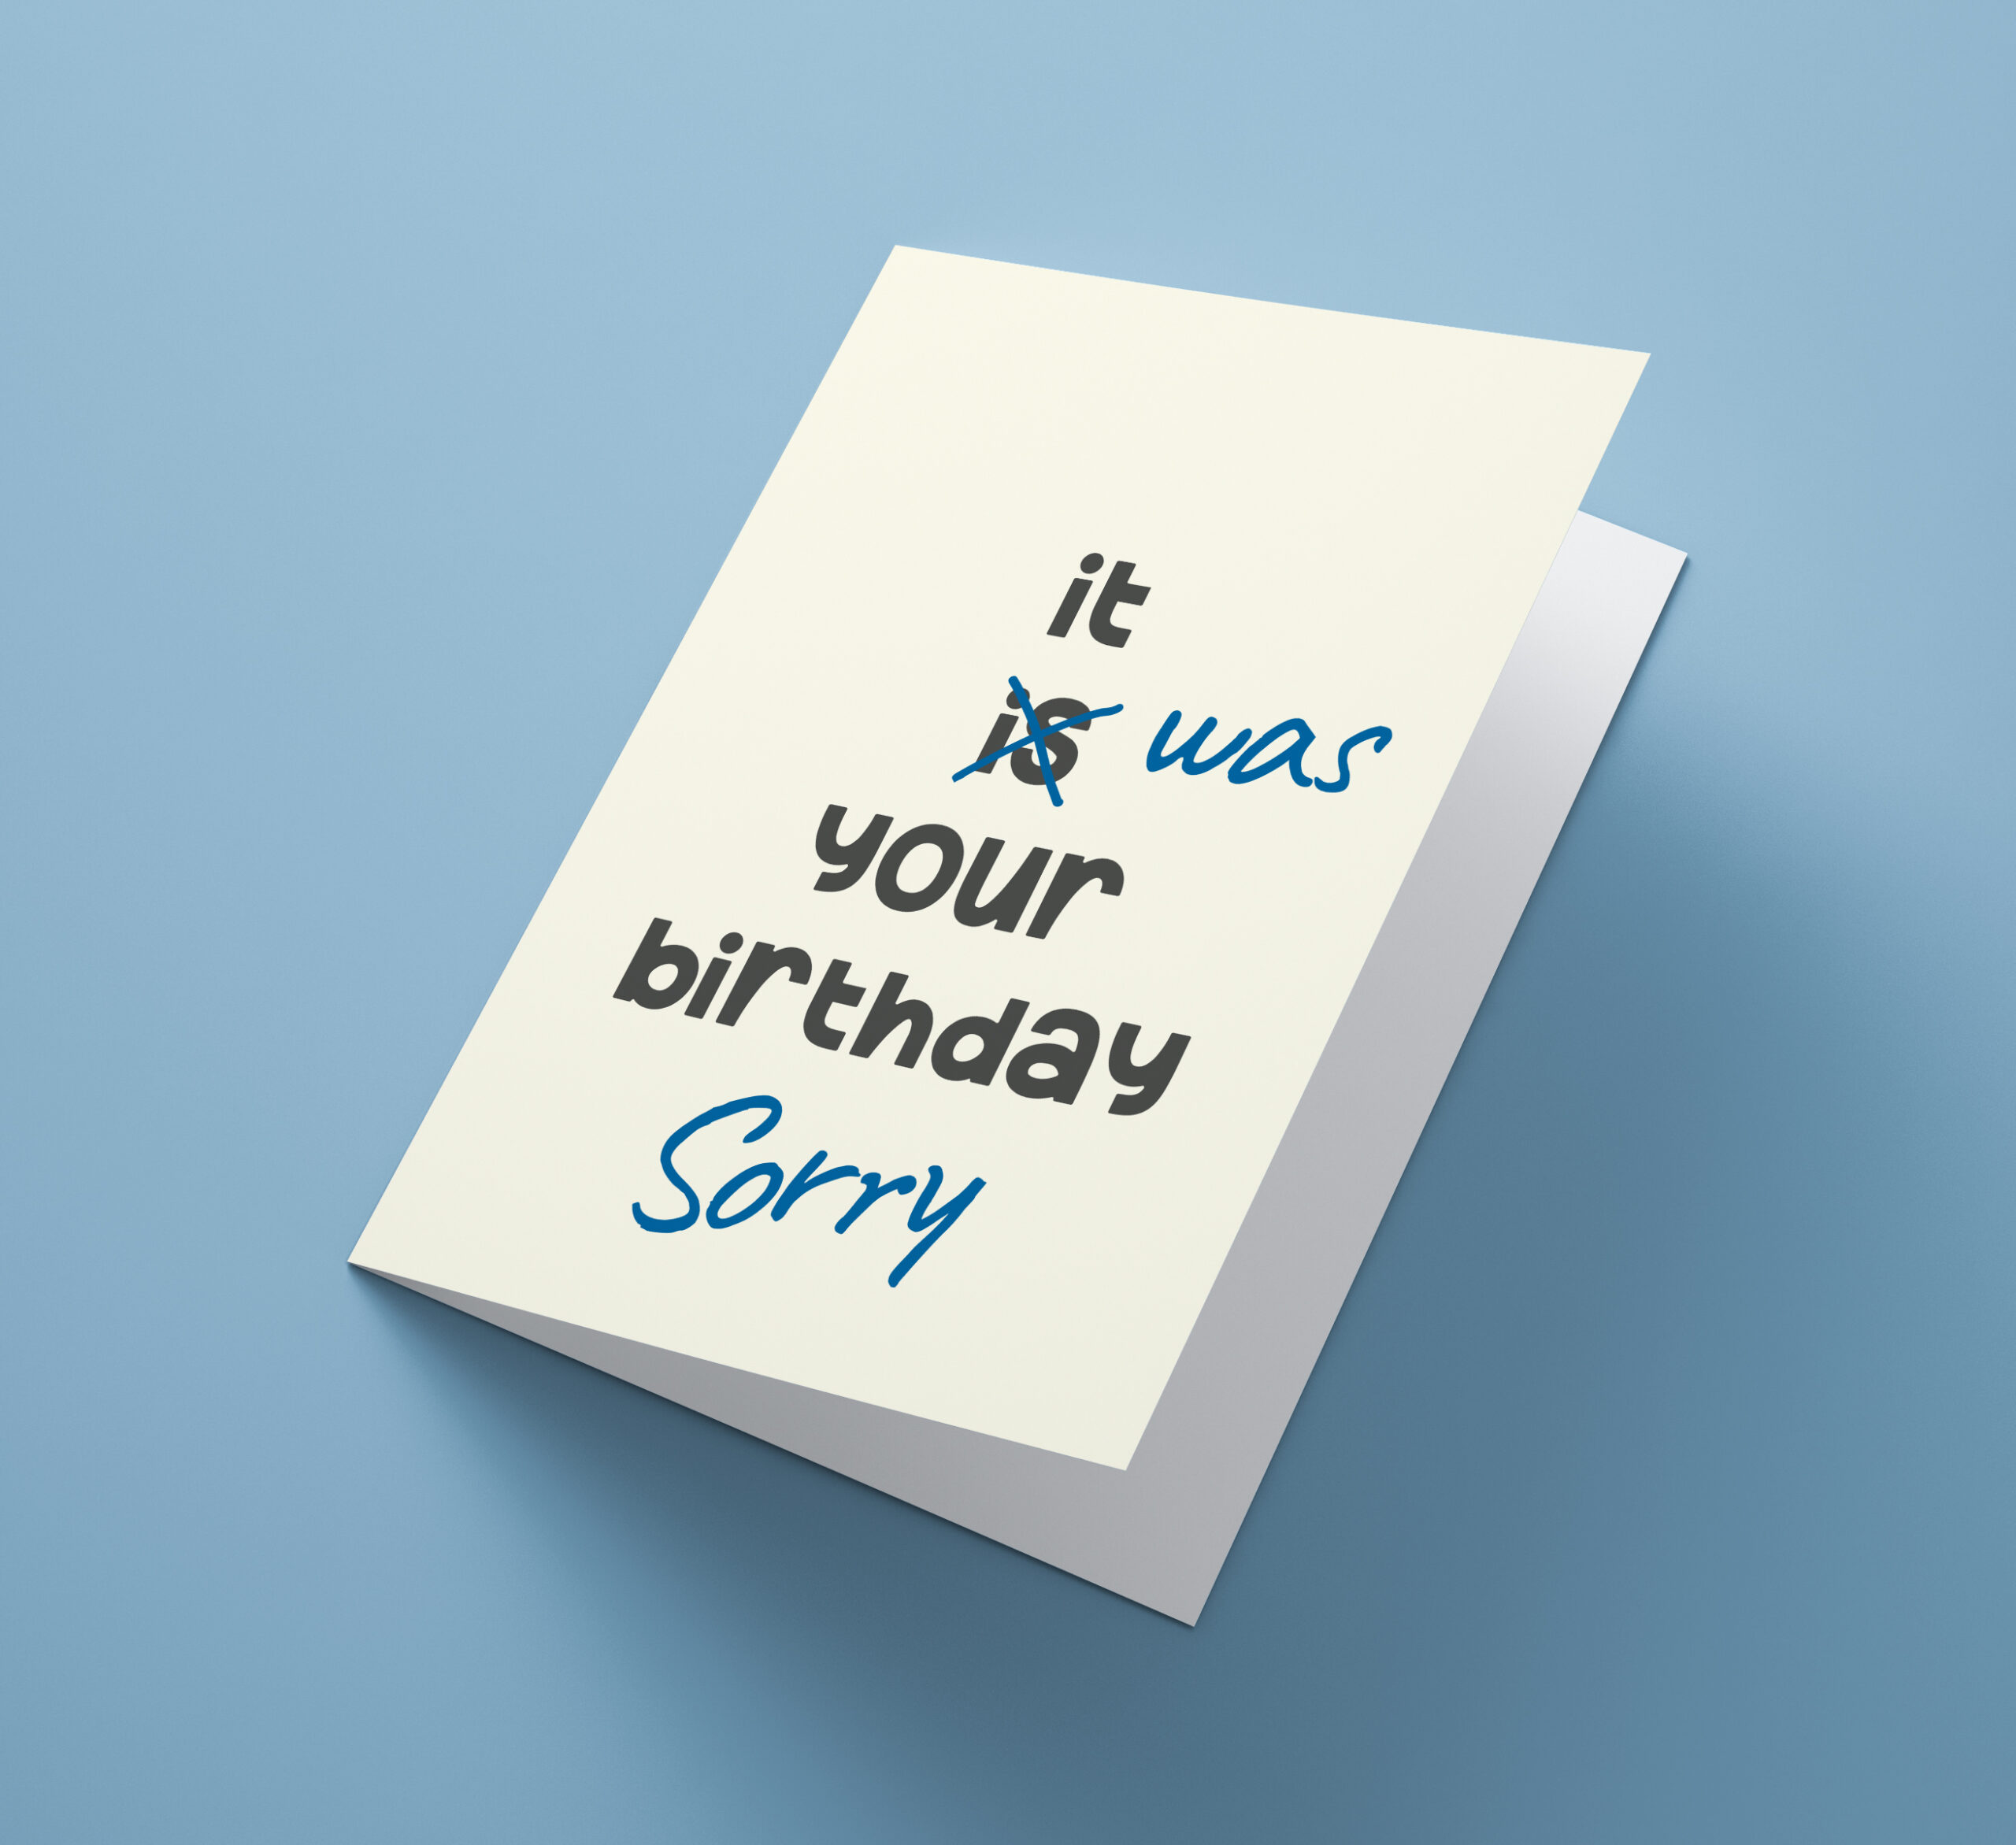 It Was Your Birthday, Sorry